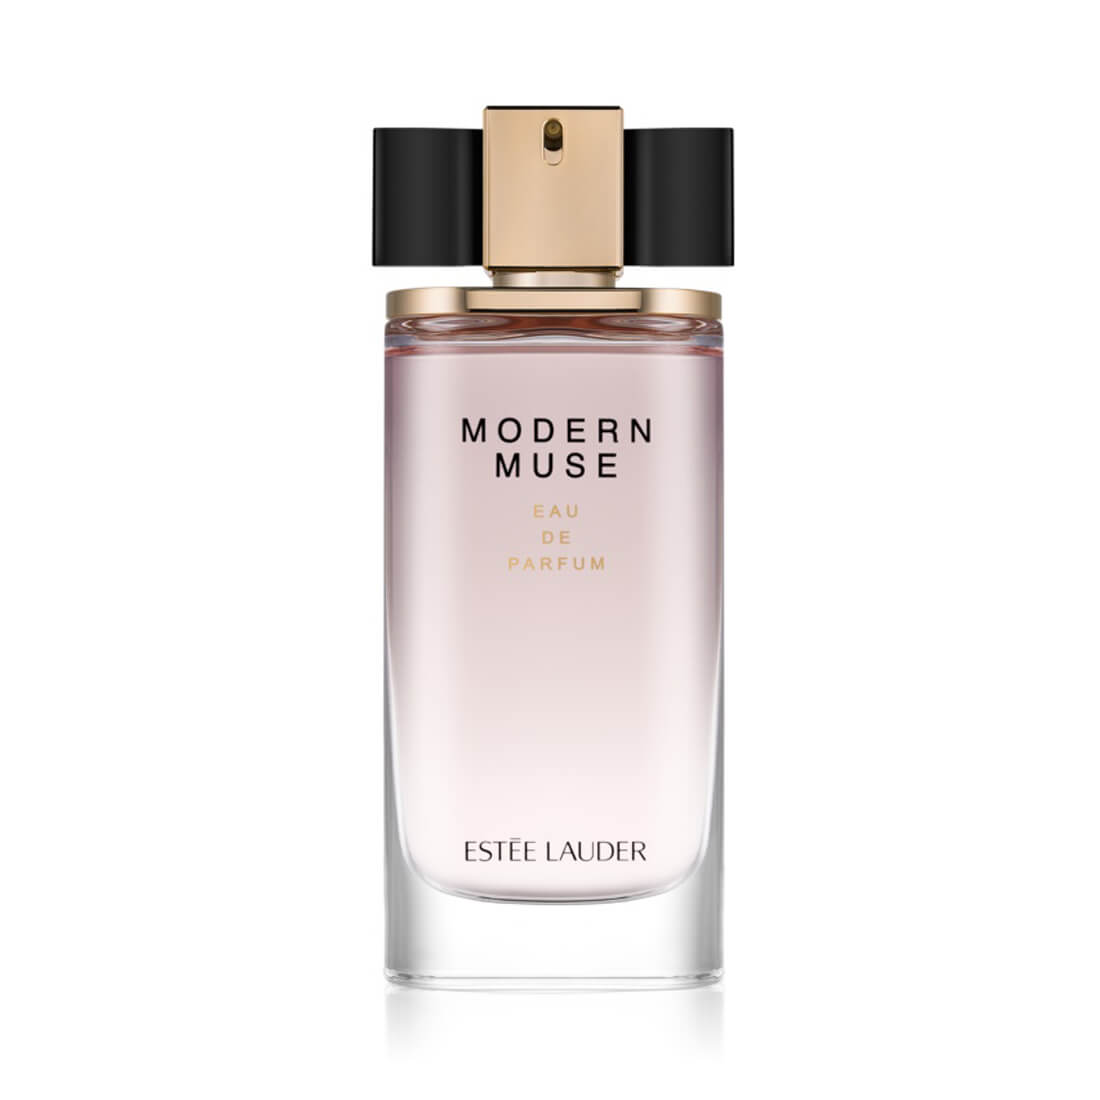 Estee Lauder Modern Muse Eau De Perfume For Women - 100ml